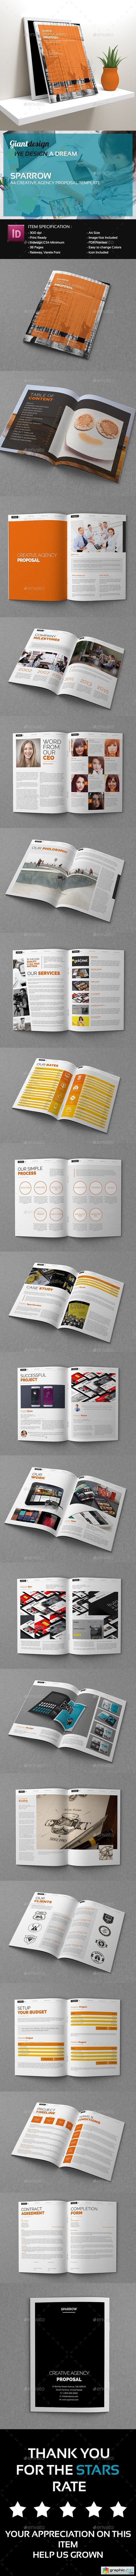 Sparrow Creative Agency Proposal Template Free Download Vector